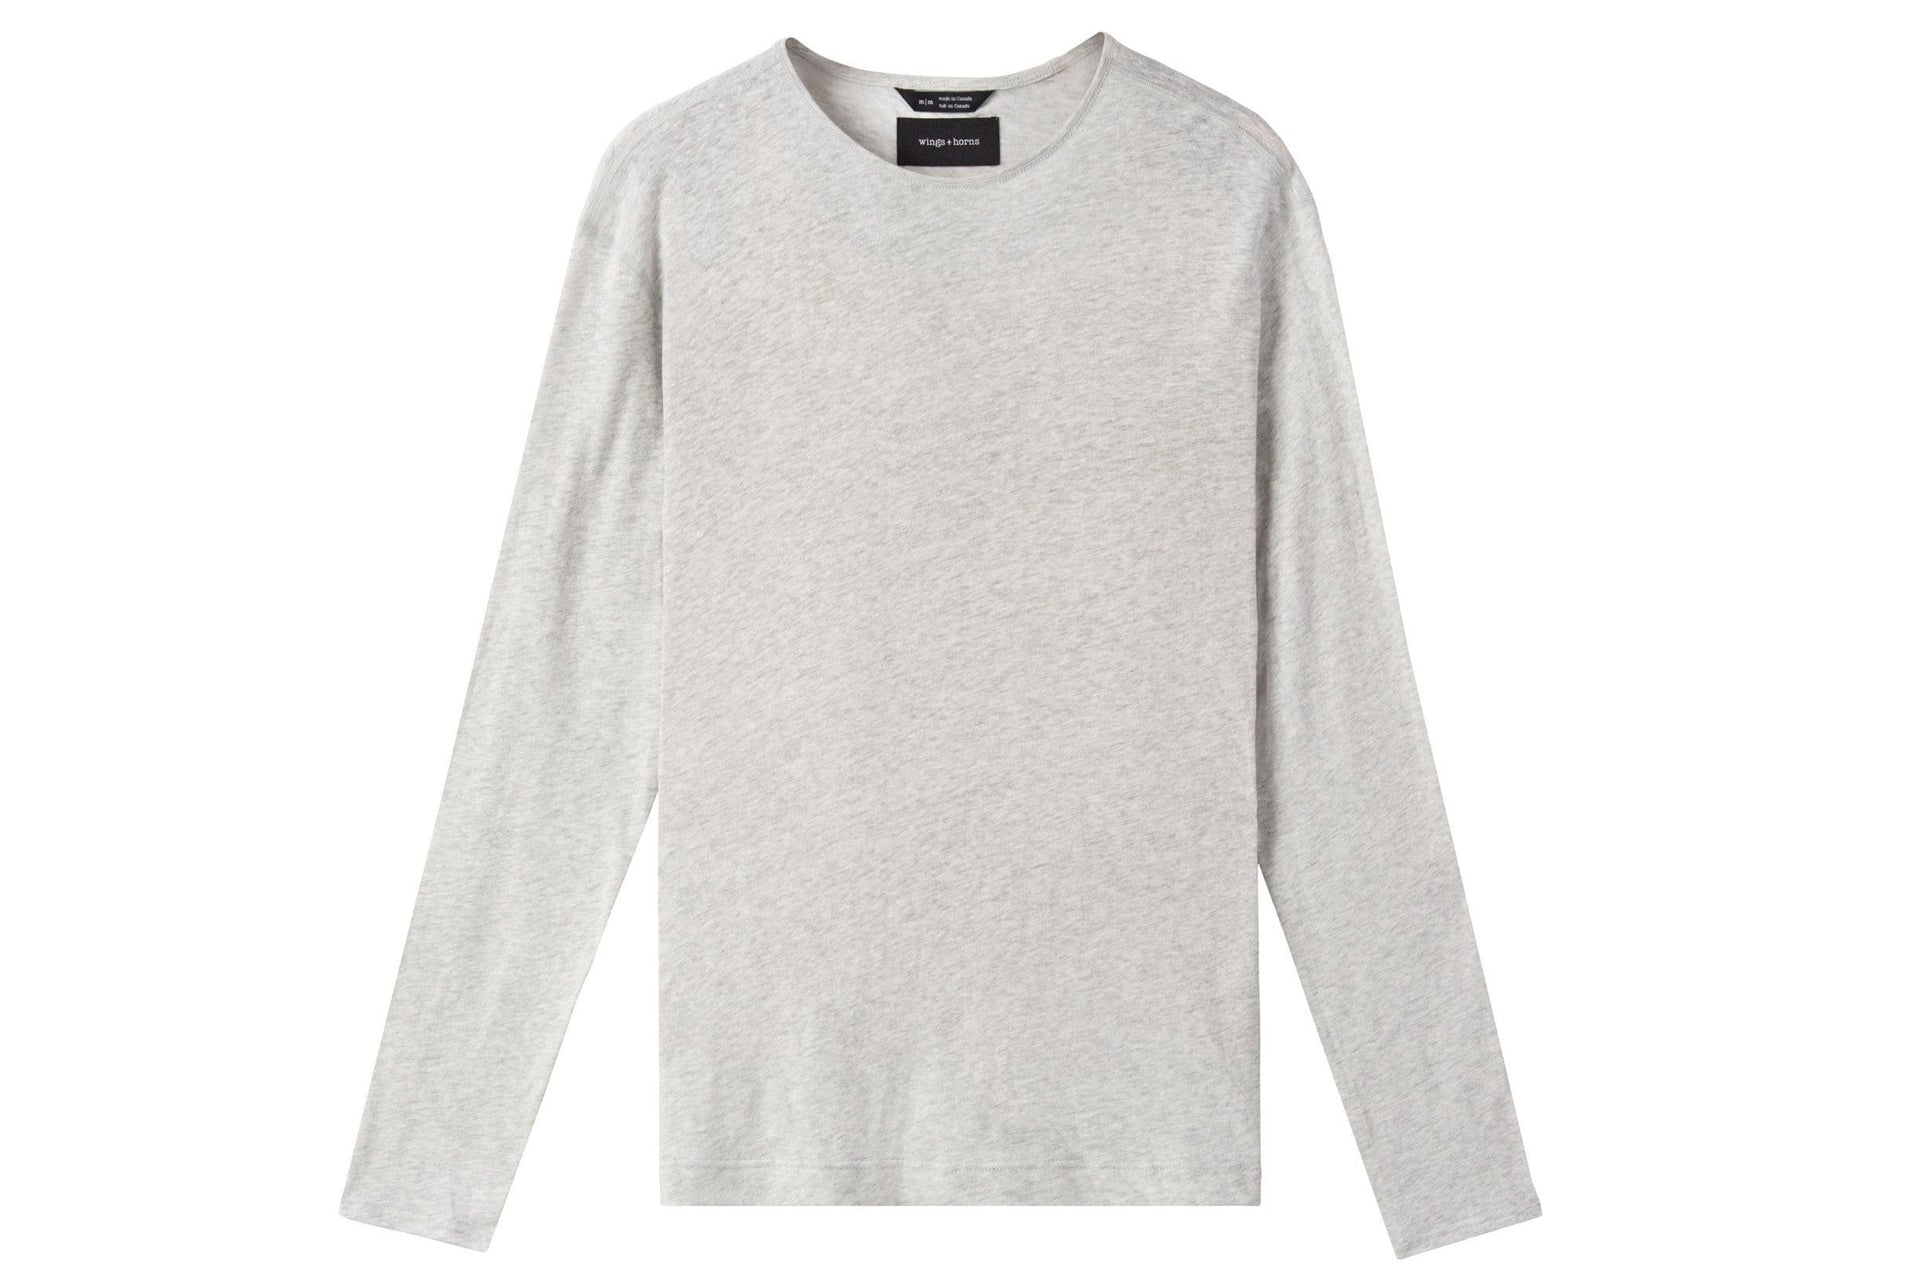 MENS KNIT LINEN JERSEY LONG SLEEVE MENS SOFTGOODS WINGS+HORNS NATURAL S WI-2167